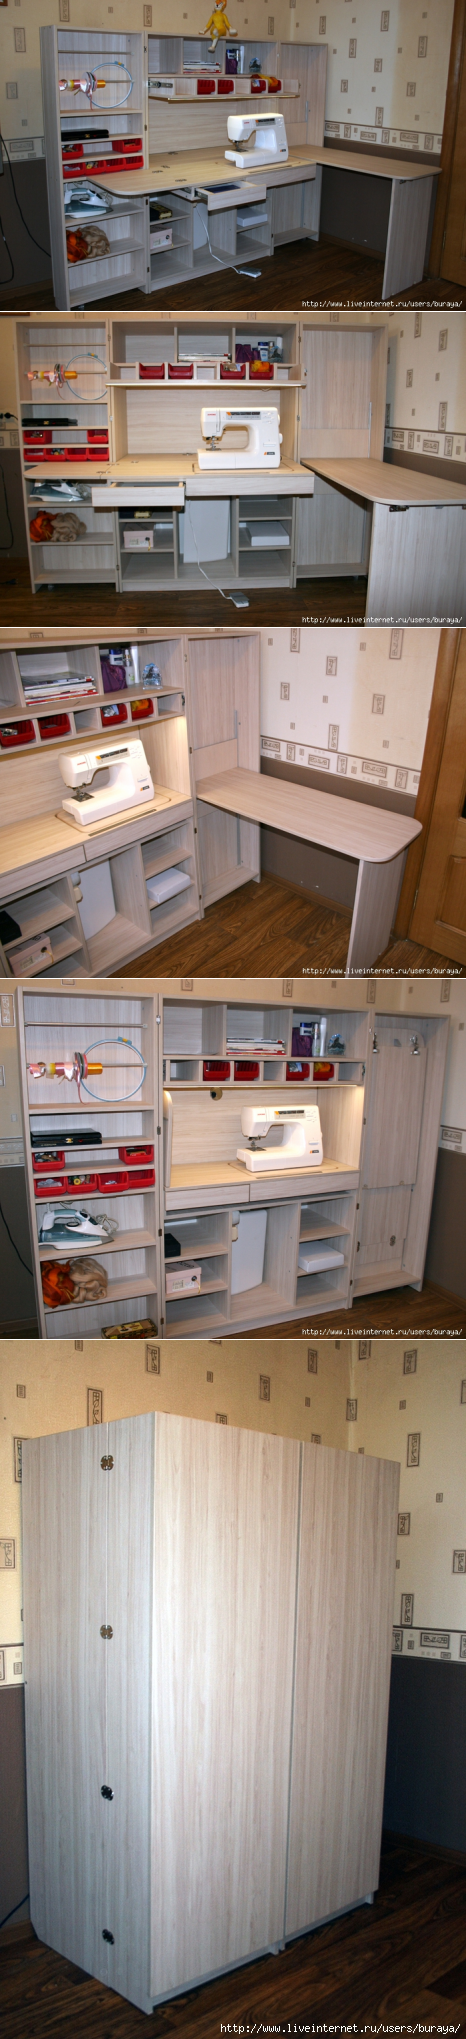 I would love a set up similar to this. Not necessarily one that folds up but I like the design of it